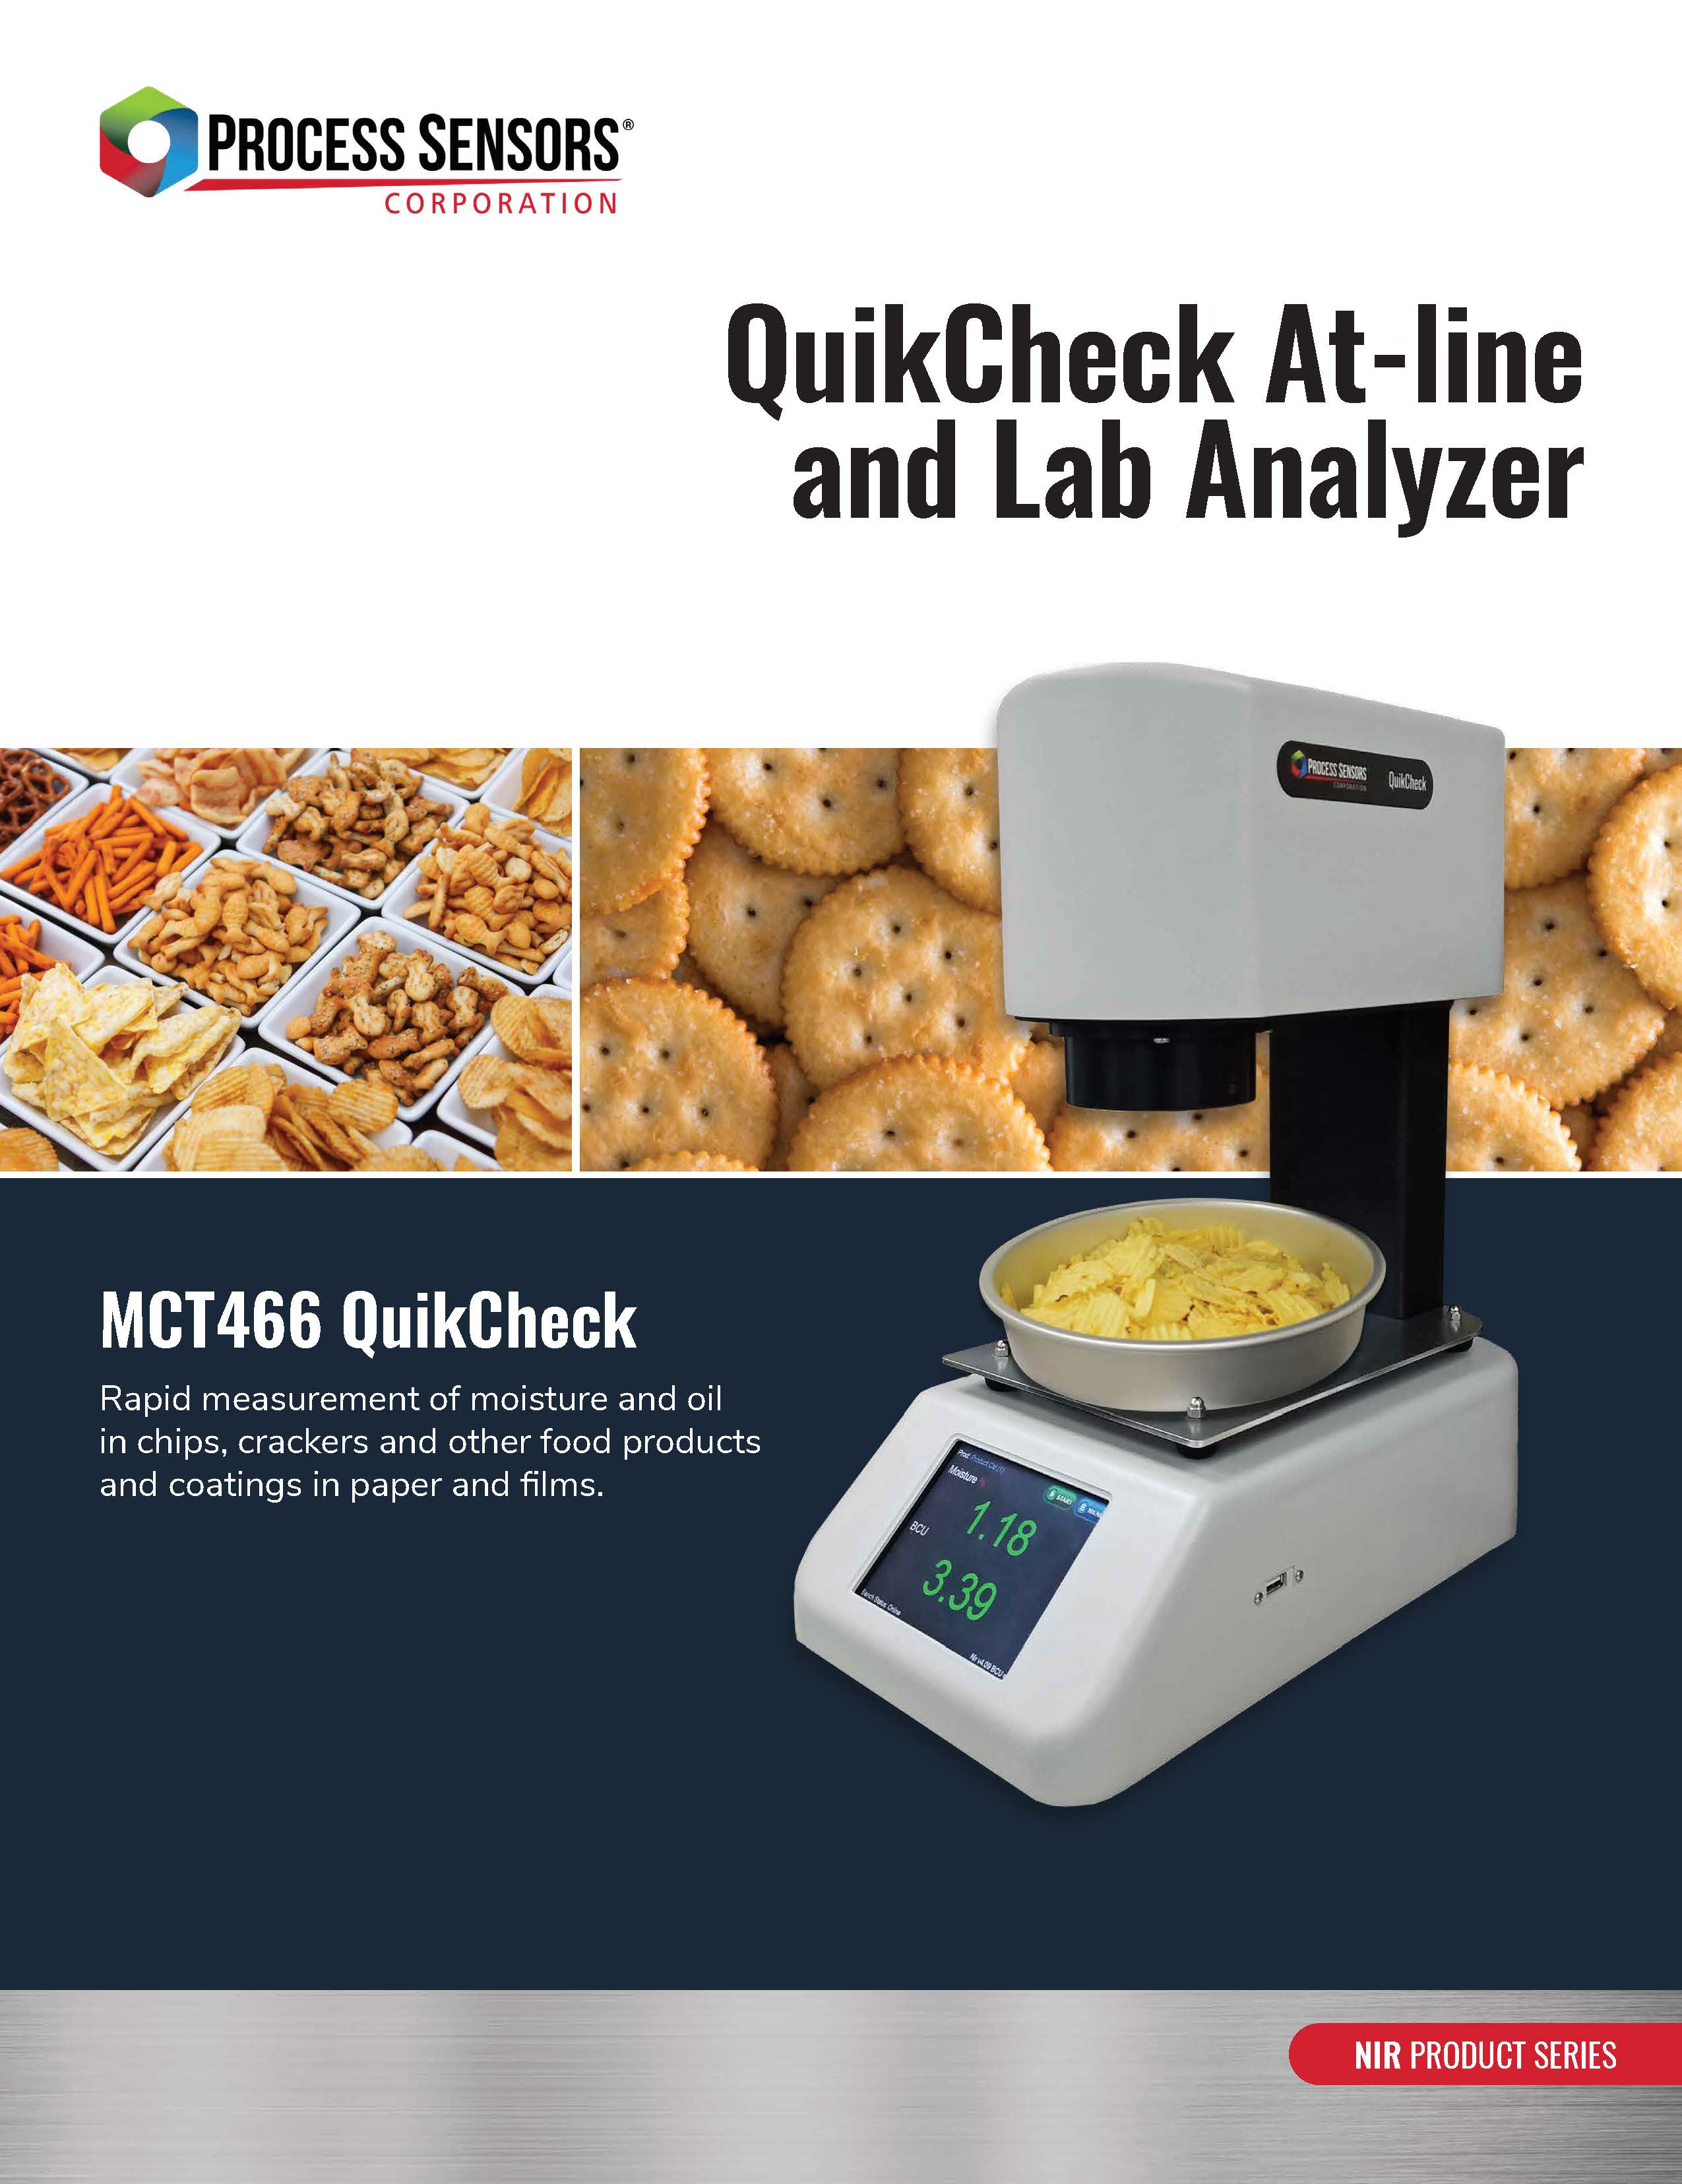 QuikCheck At-Line and Lab Analyzer